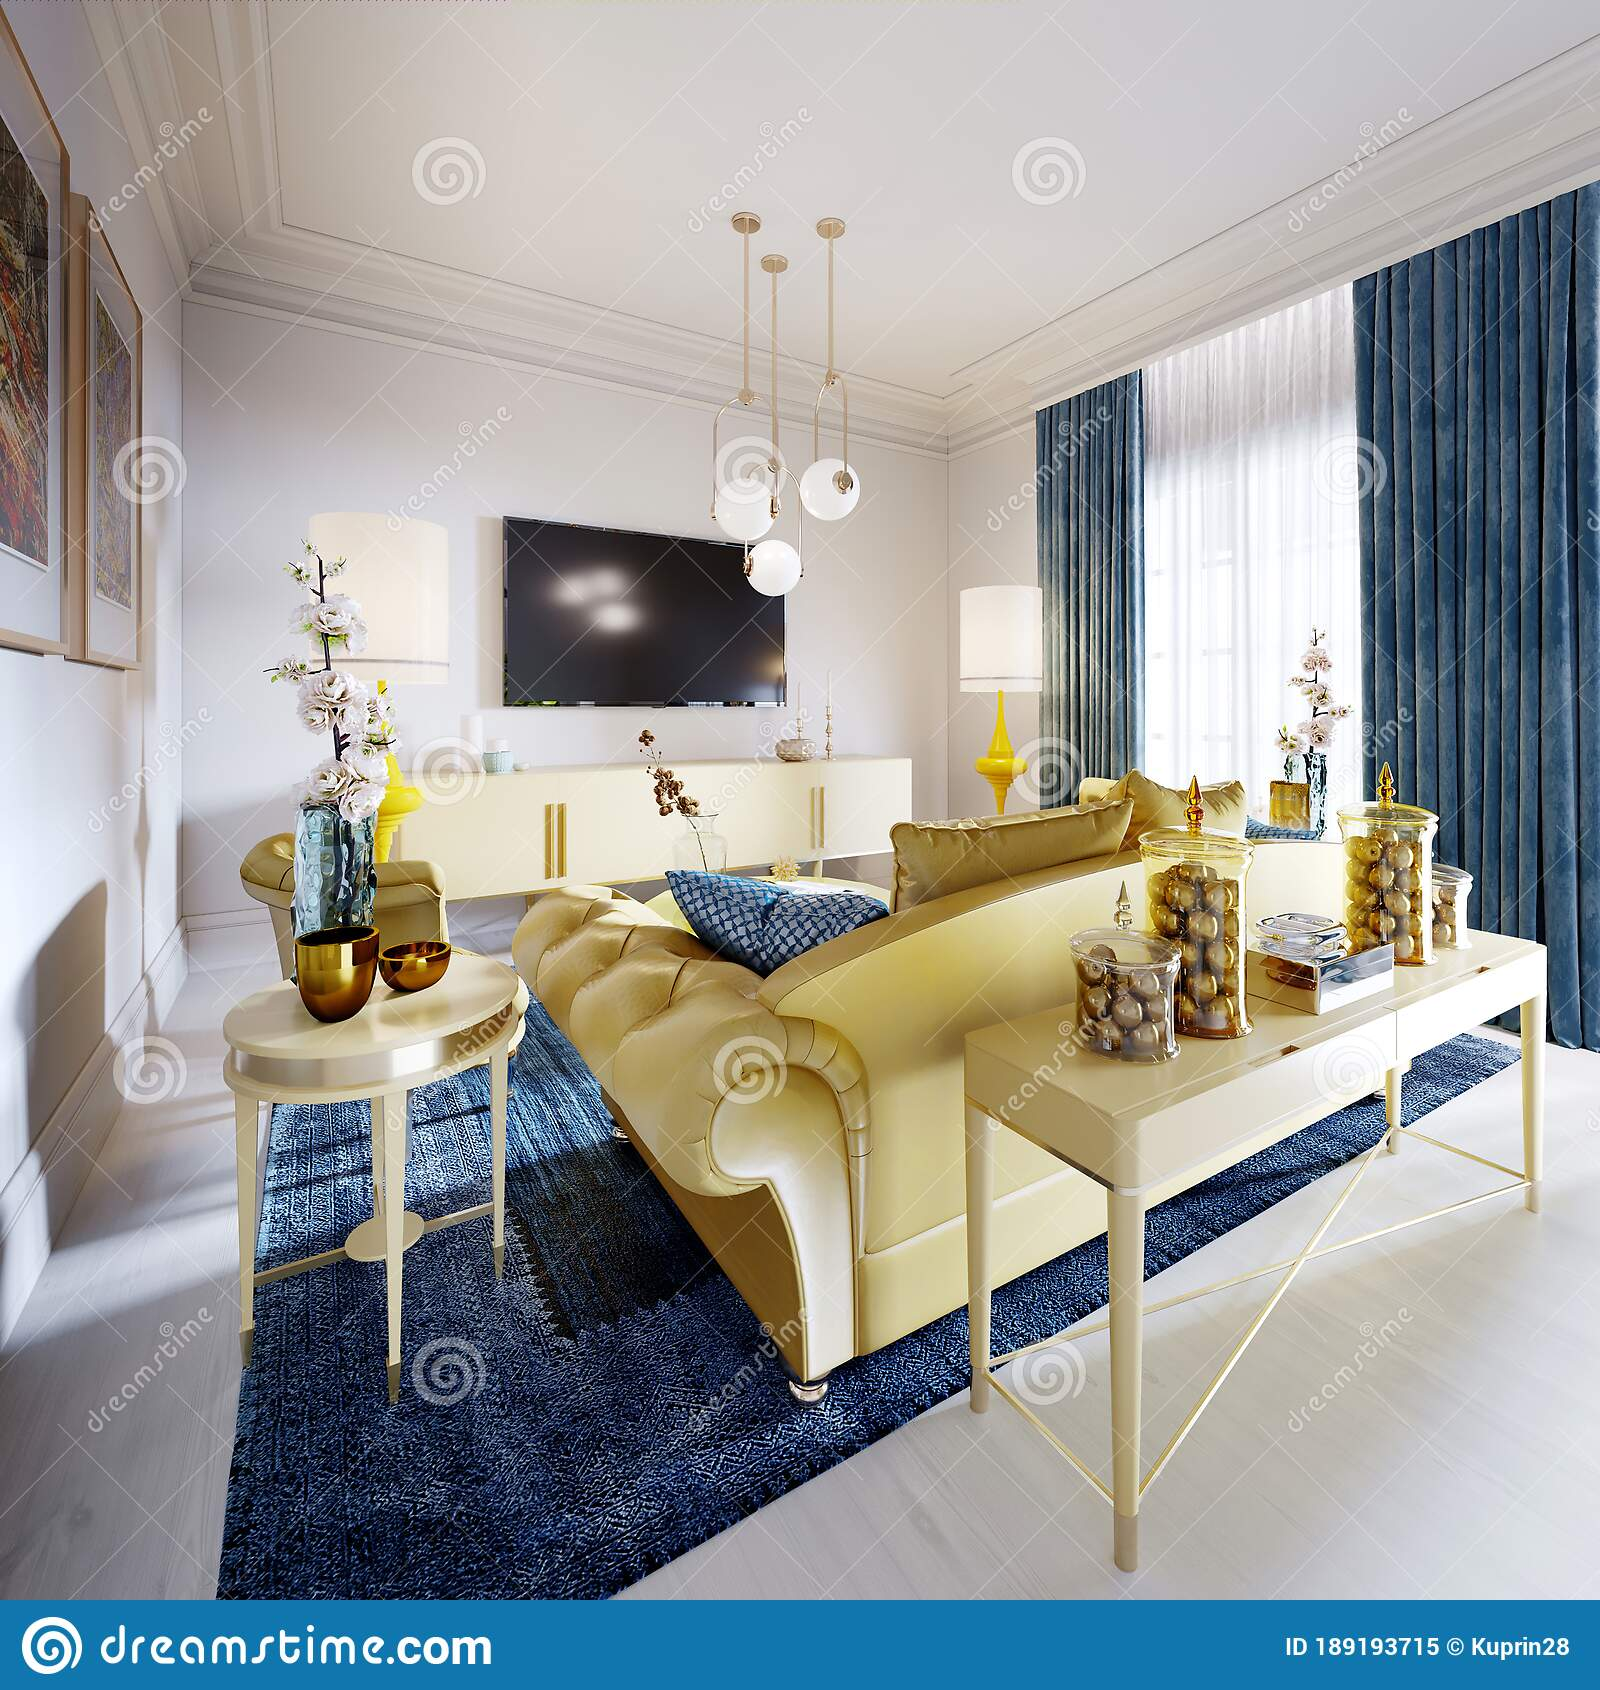 Luxurious Fashionable Living Room With Yellow Upholstered Furniture And Blue Carpet And Decor Yellow Console With Decor Stock Illustration Illustration Of Carpet Floor 189193715